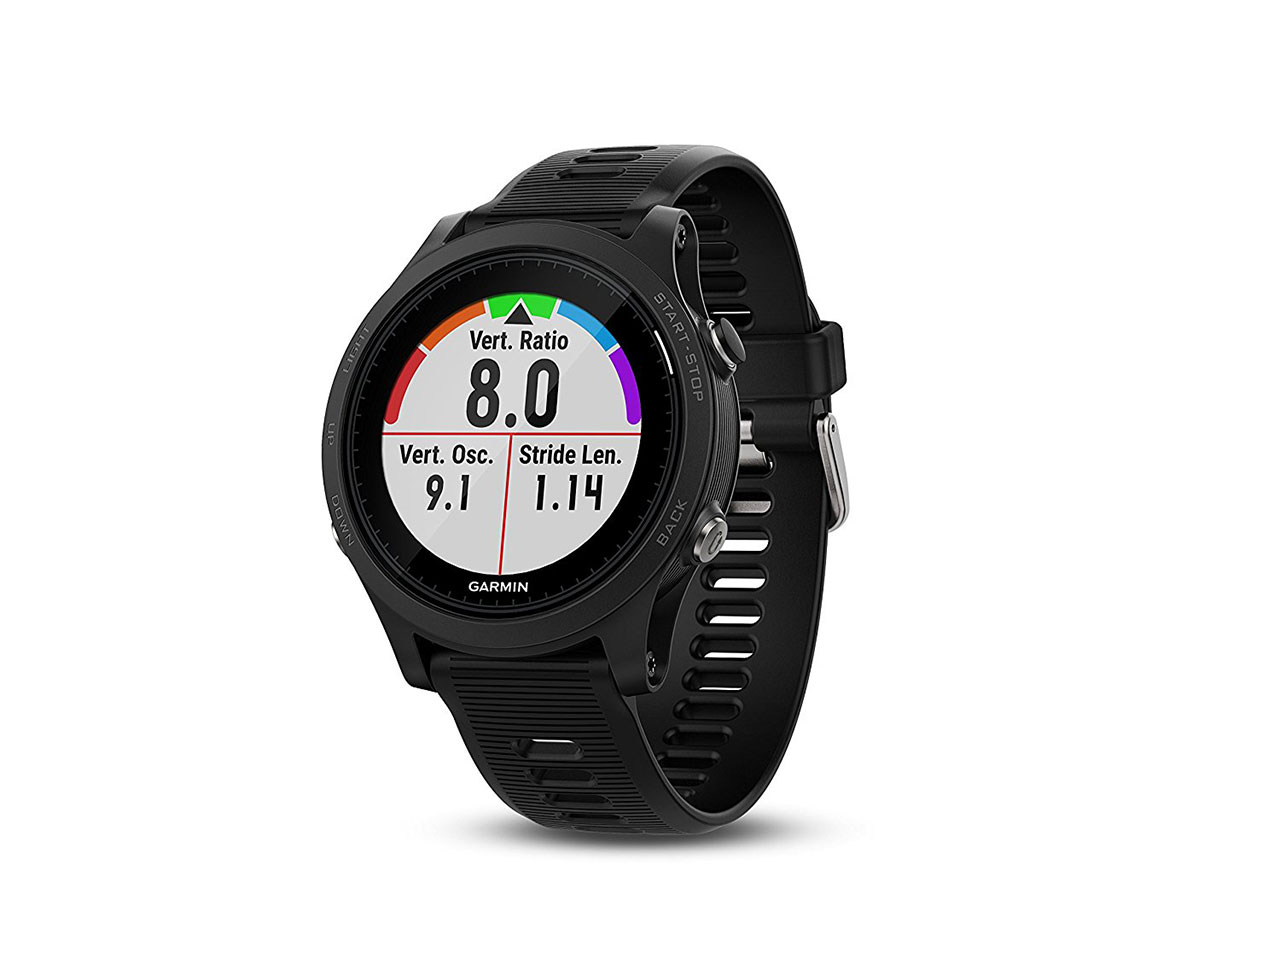 technology vivosmart expert in day but better hr watches its garmin abound great equipment tracker review fitness wearable reviews tracking options a